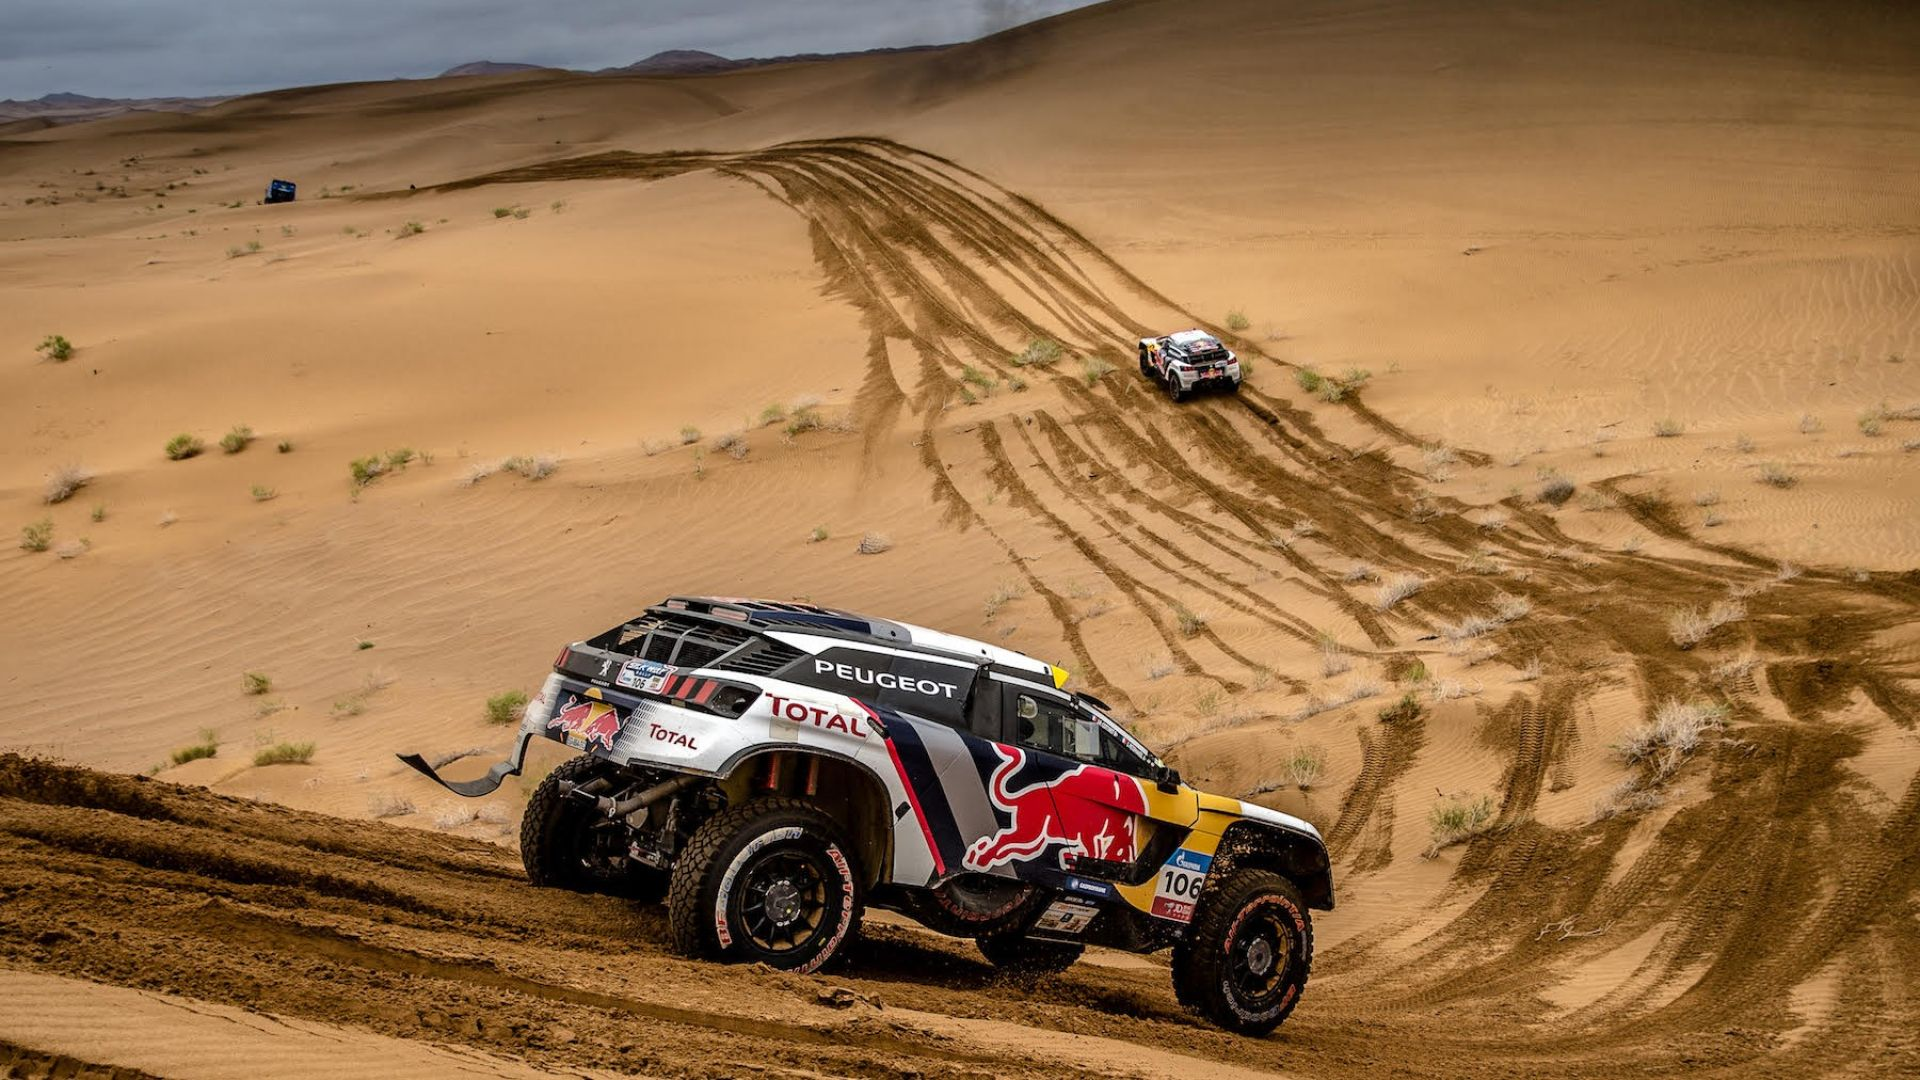 silk way rally 2017 peugeot 3008 dkr conquista le dune. Black Bedroom Furniture Sets. Home Design Ideas